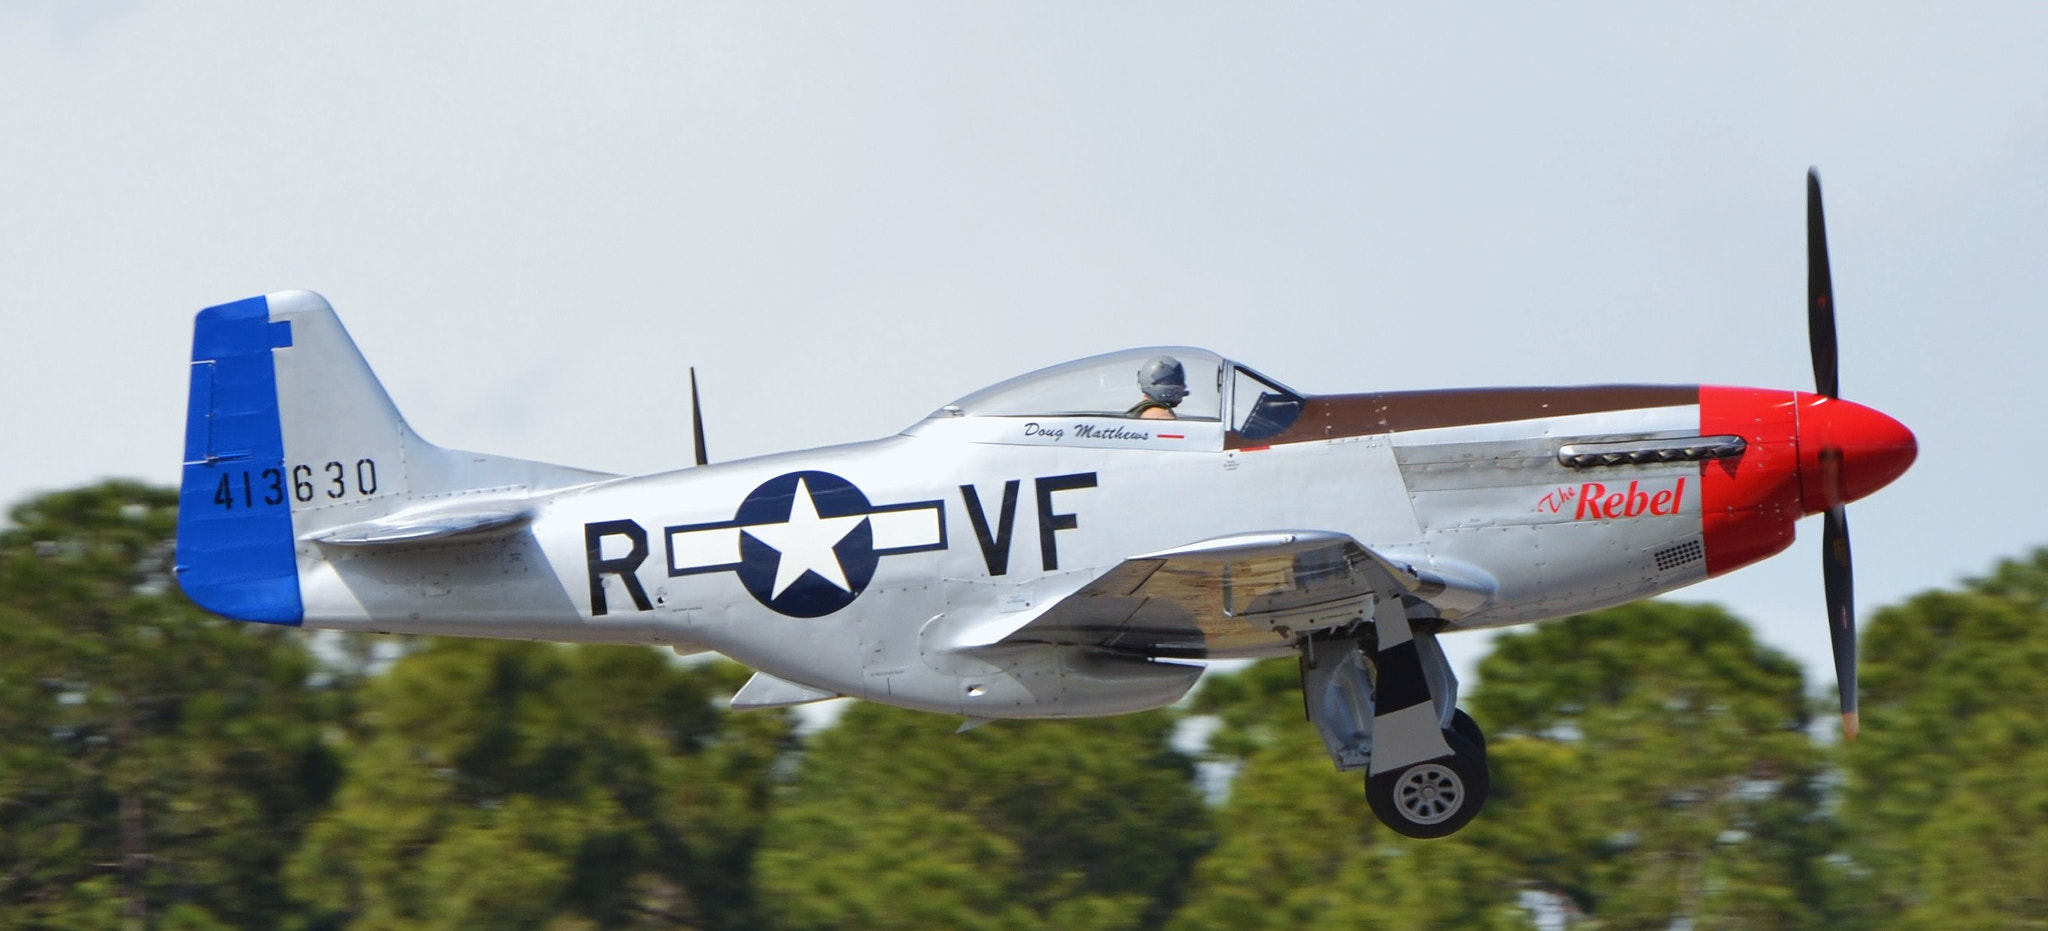 Photograph P-51 Mustang by Michael Fitzsimmons on 500px